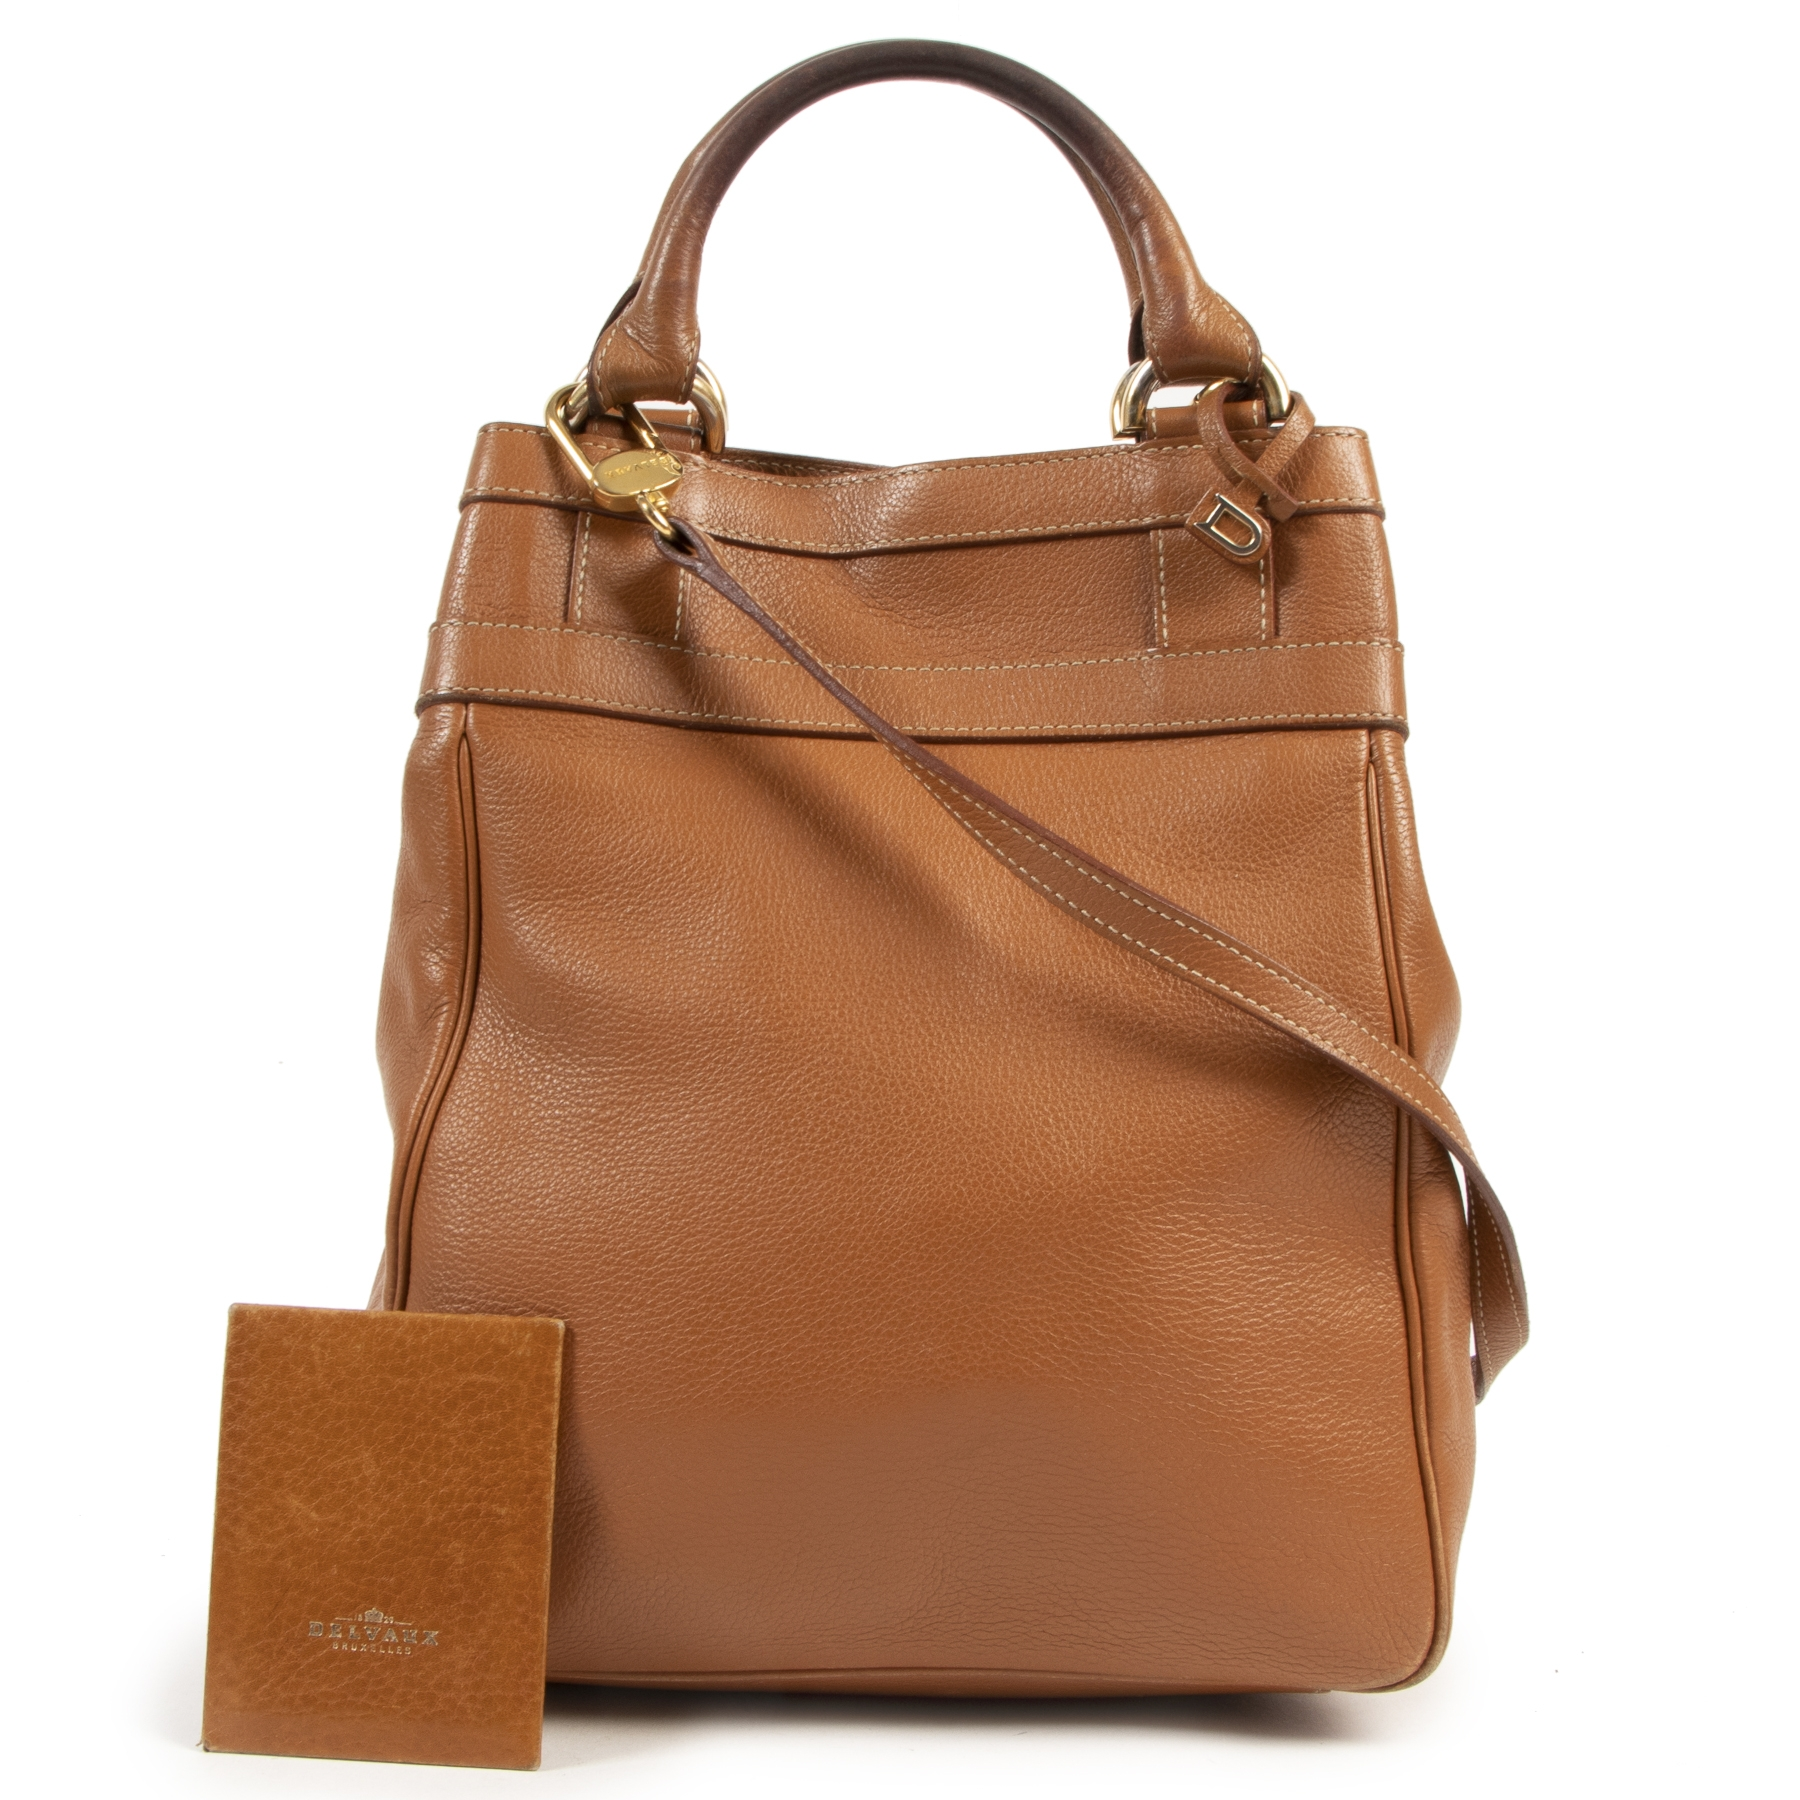 skip the waiting list shop safe online Delvaux Cognac Leather Top Handle Crossbody Bag